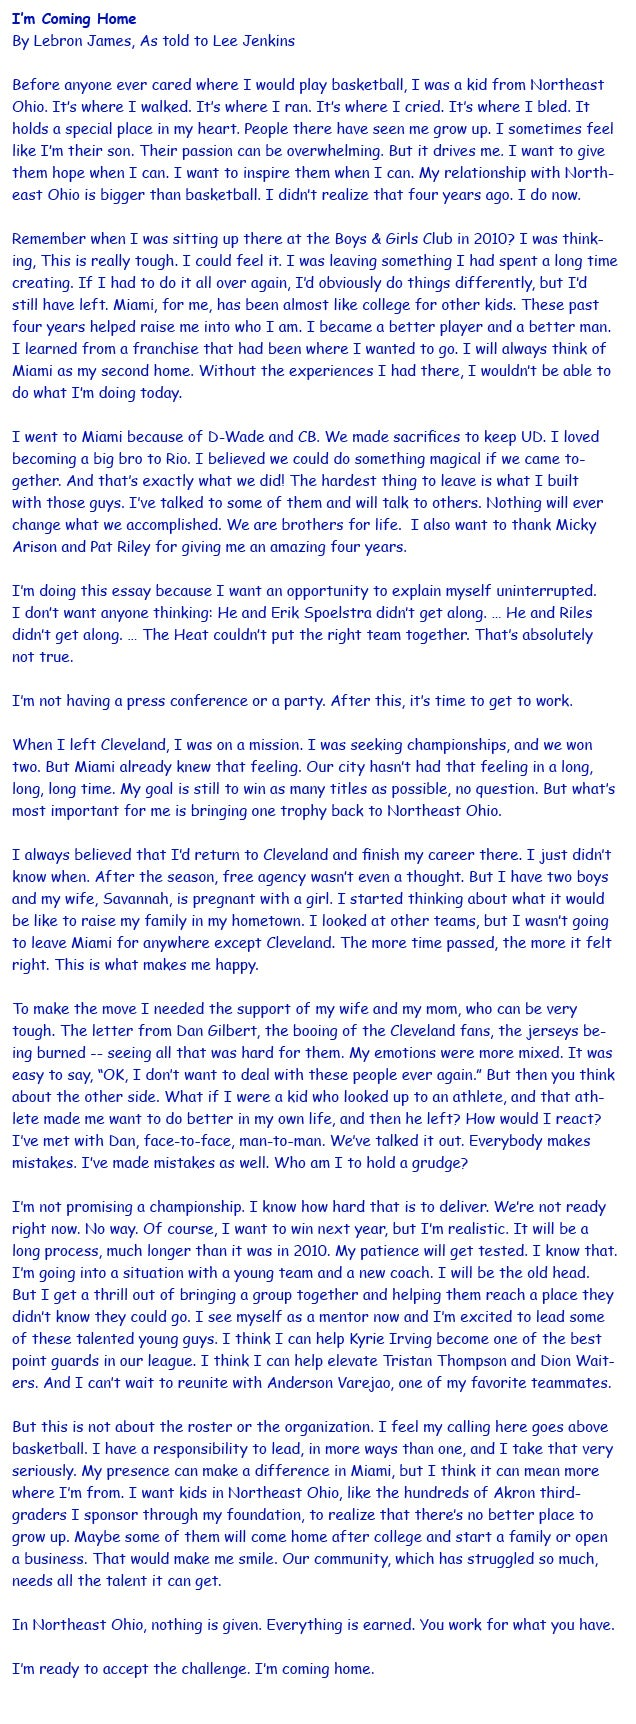 LeBron's Essay, In Comic Sans